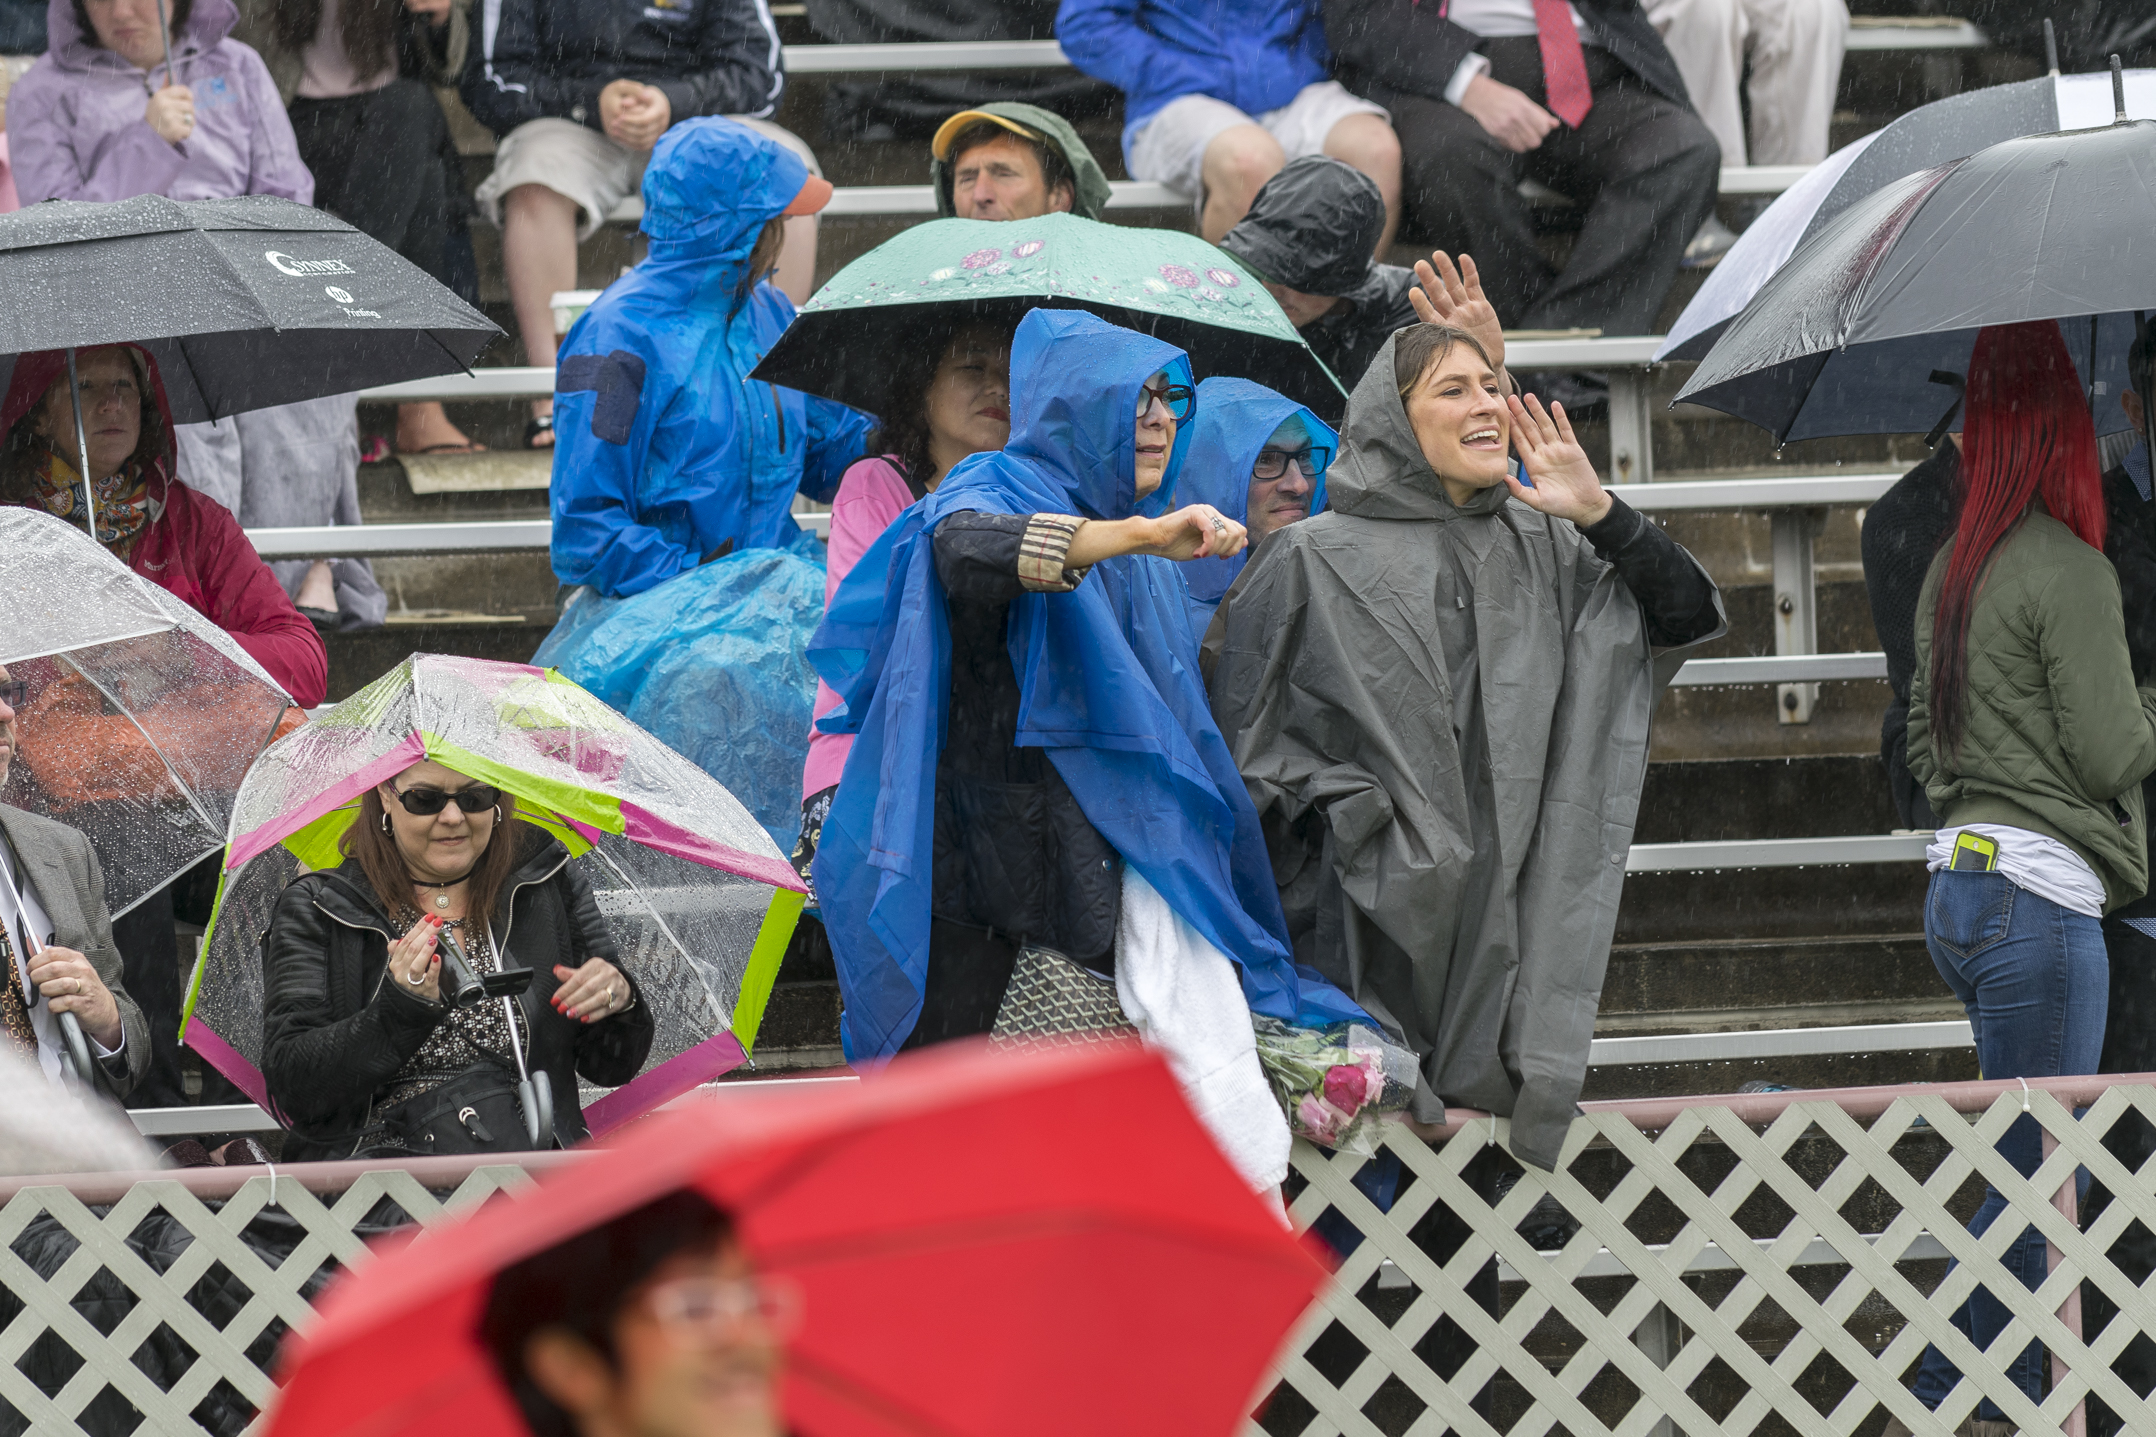 Visitors cheer on graduates Monday, May 22, 2017, in Goodman Stadium. Thousands of friends and family members packed the football stands to watch the 149th commencement ceremony. (Roshan Giyanani/B&W Staff)